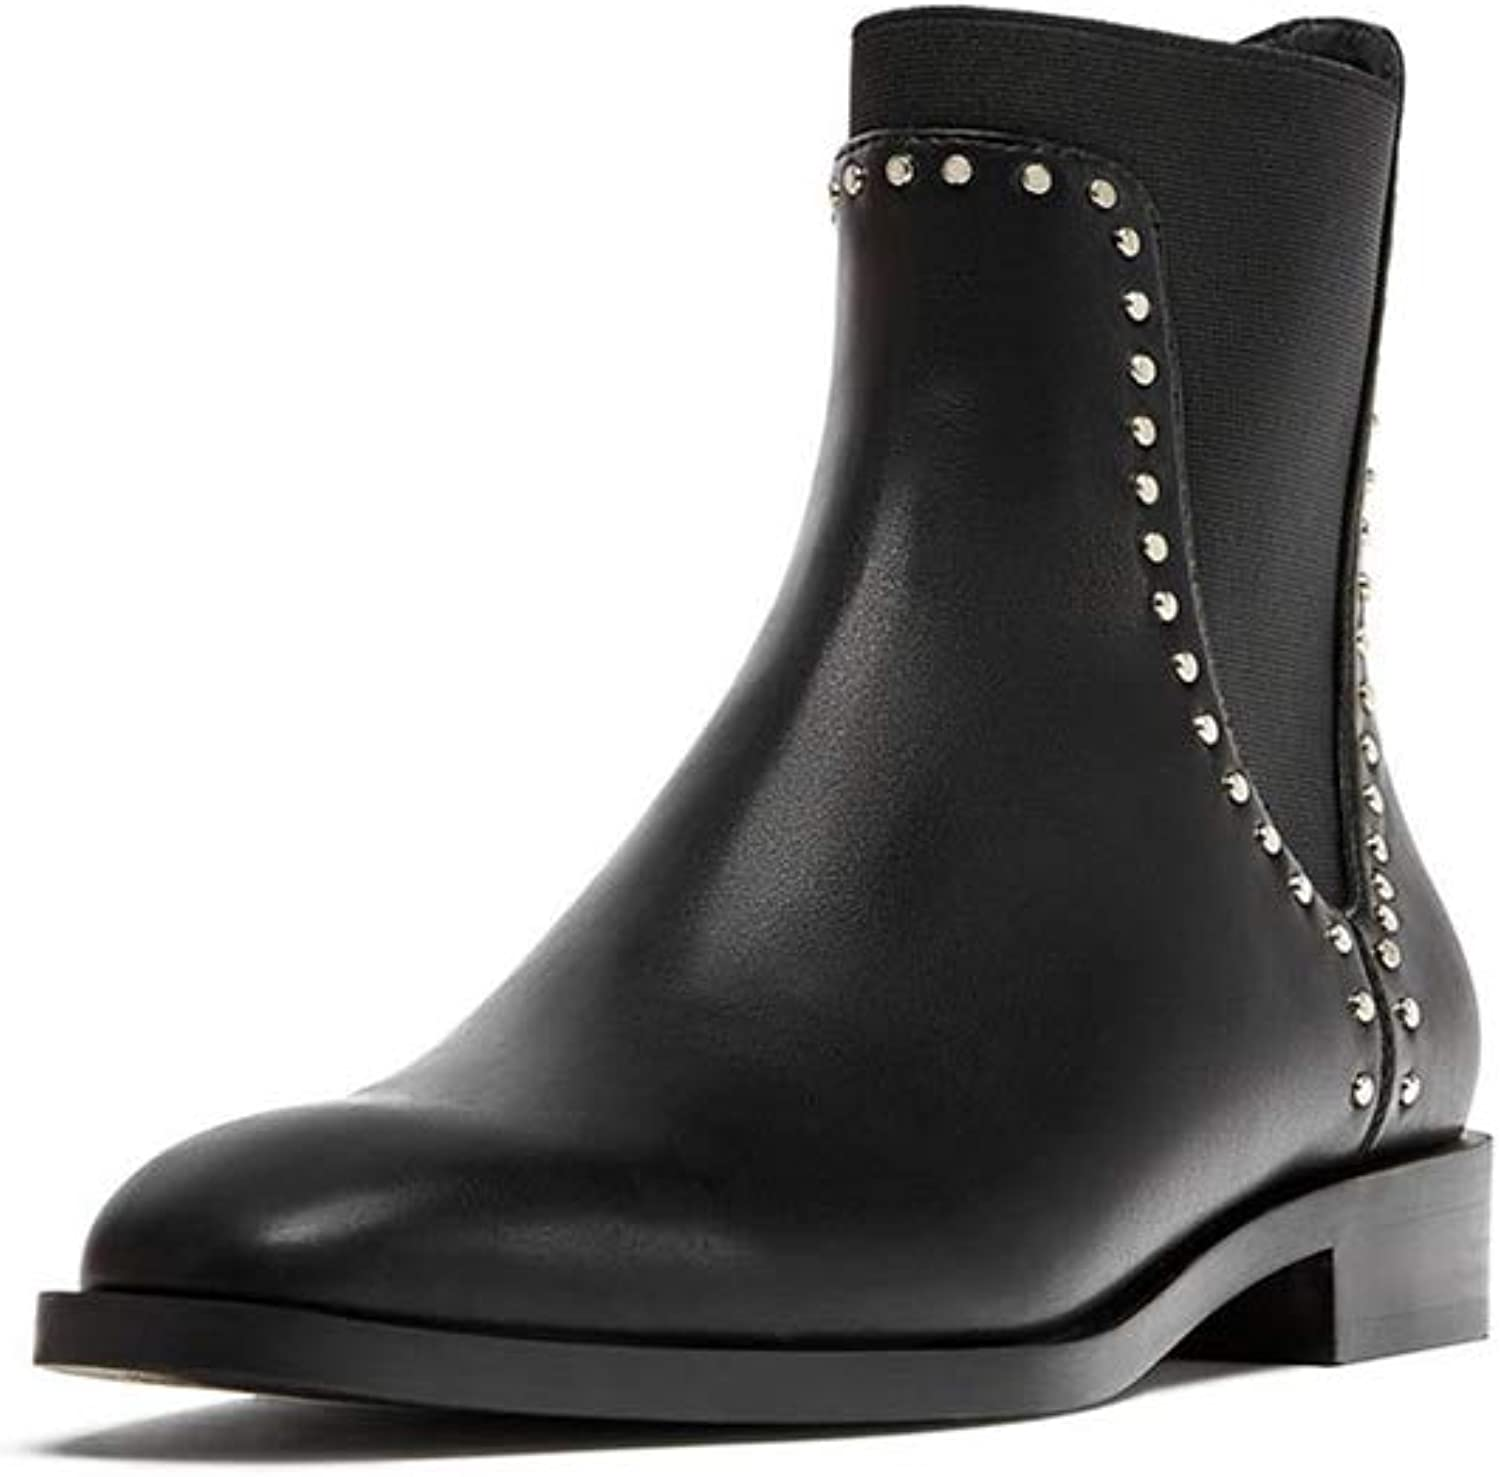 MINIKATA Women Casual Rivets shoes Patent Leather Flat Slip On Ankle Boots Martin Boots